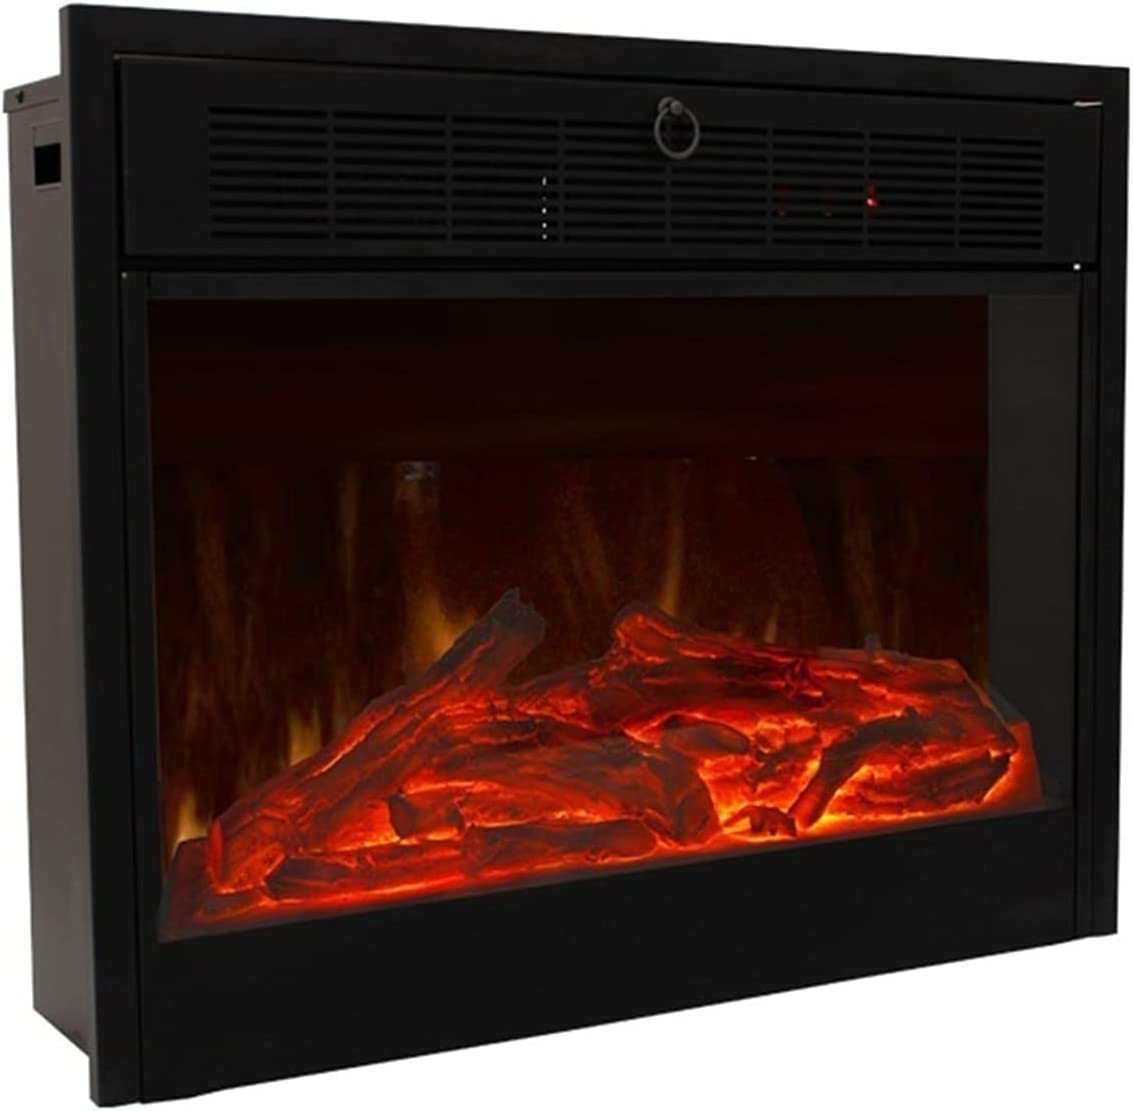 Fireplaces RENJUN- Embedded Electric Free shipping anywhere in the nation Heater 4 years warranty Realistic Flame with